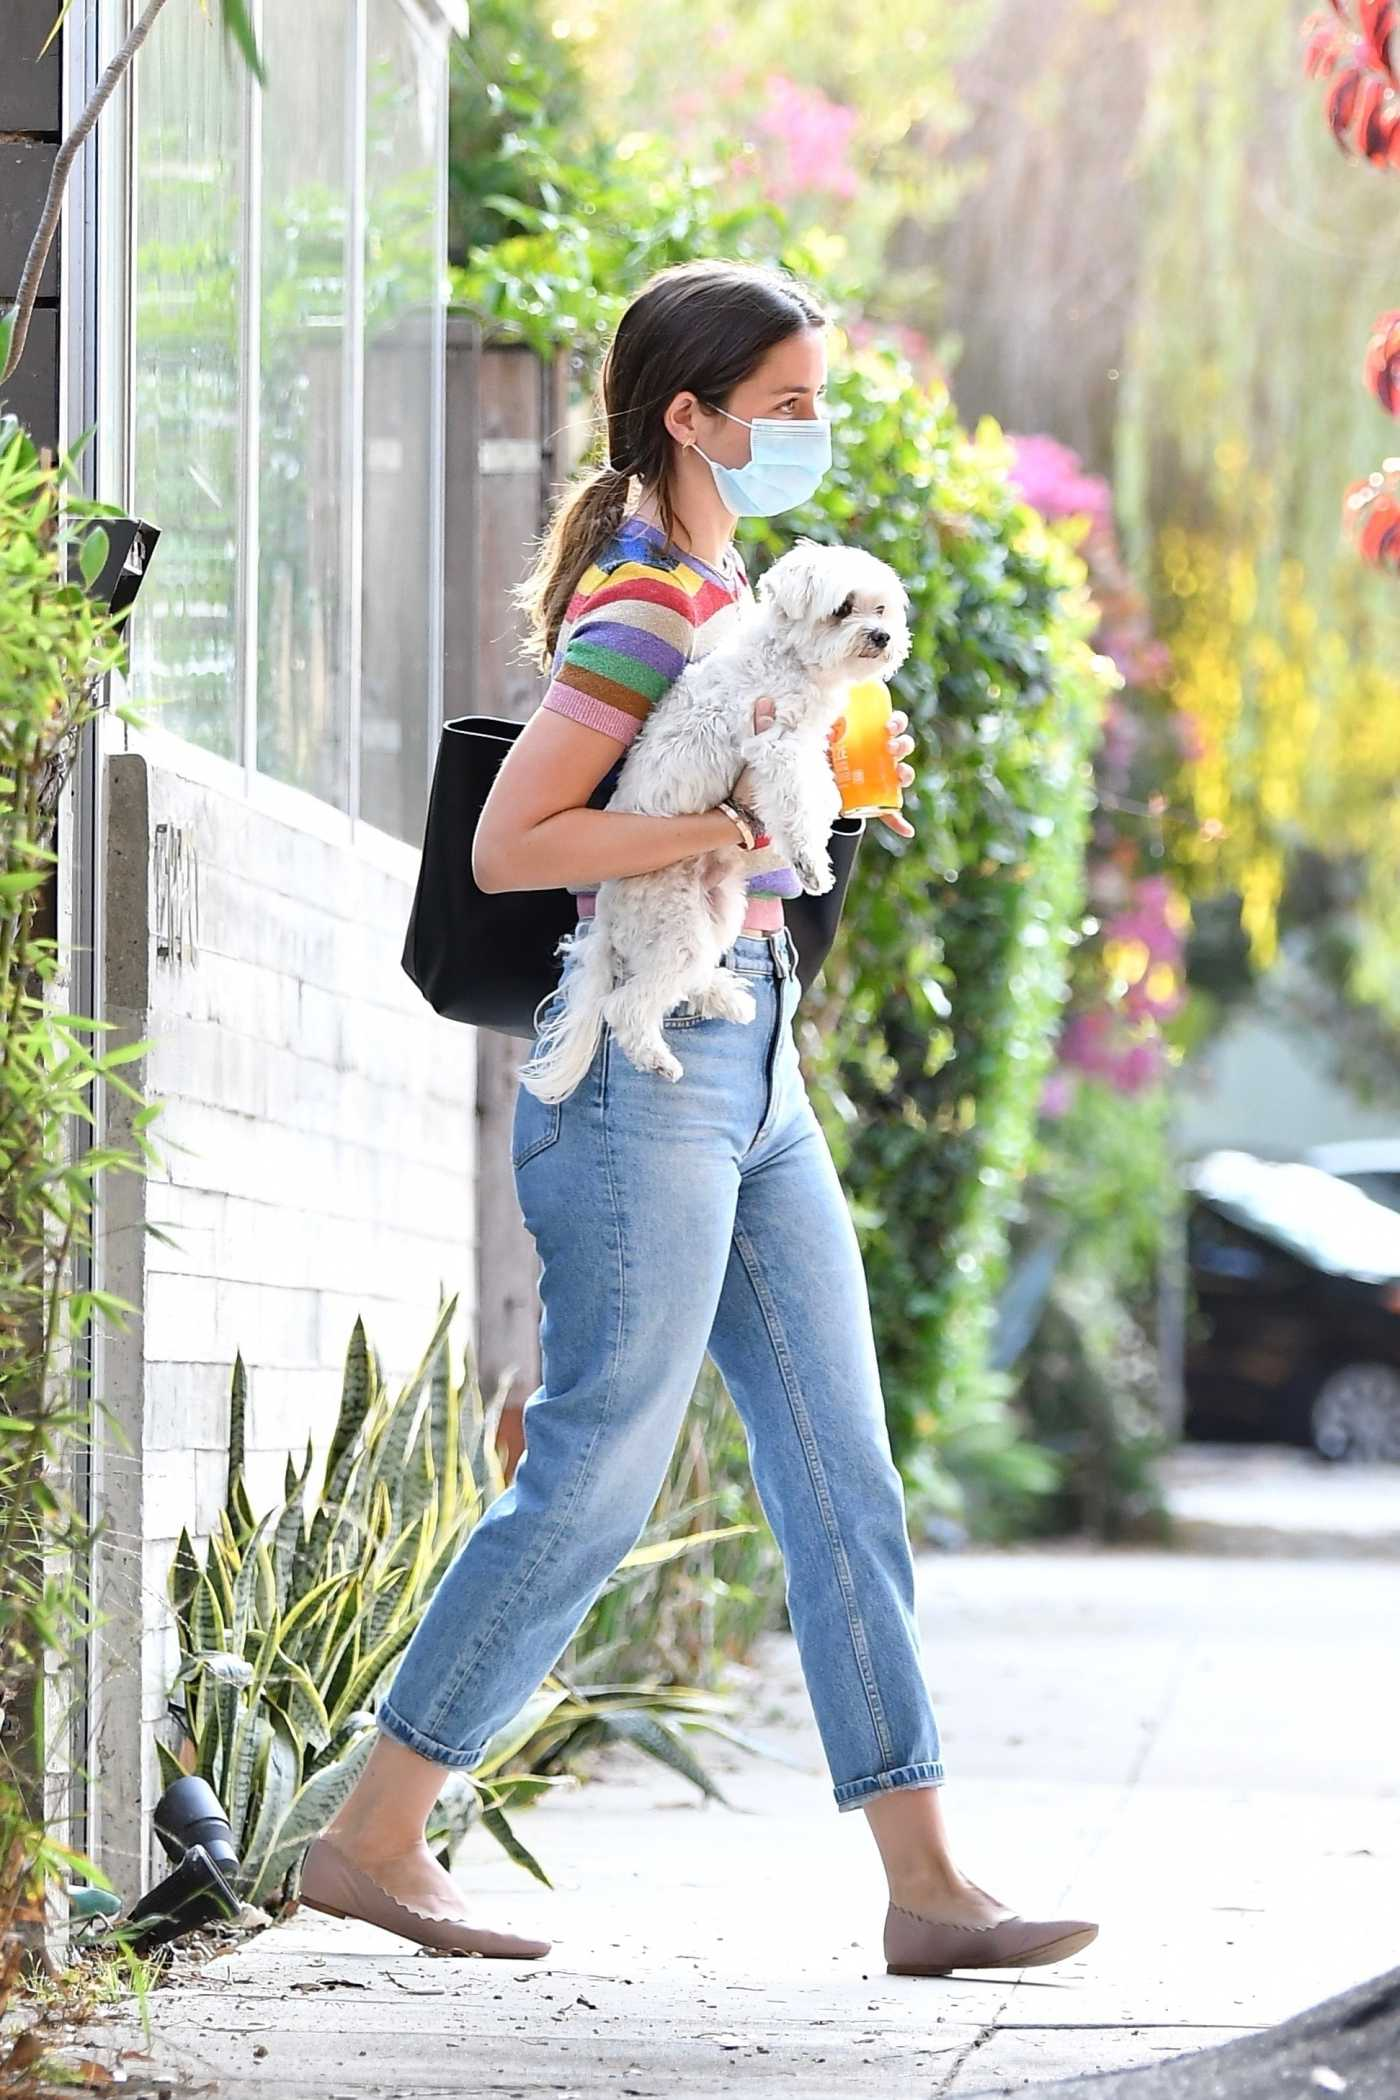 Ana de Armas in a Blue Jeans Was Seen Out with Her Dog in Venice Beach 08/19/2020